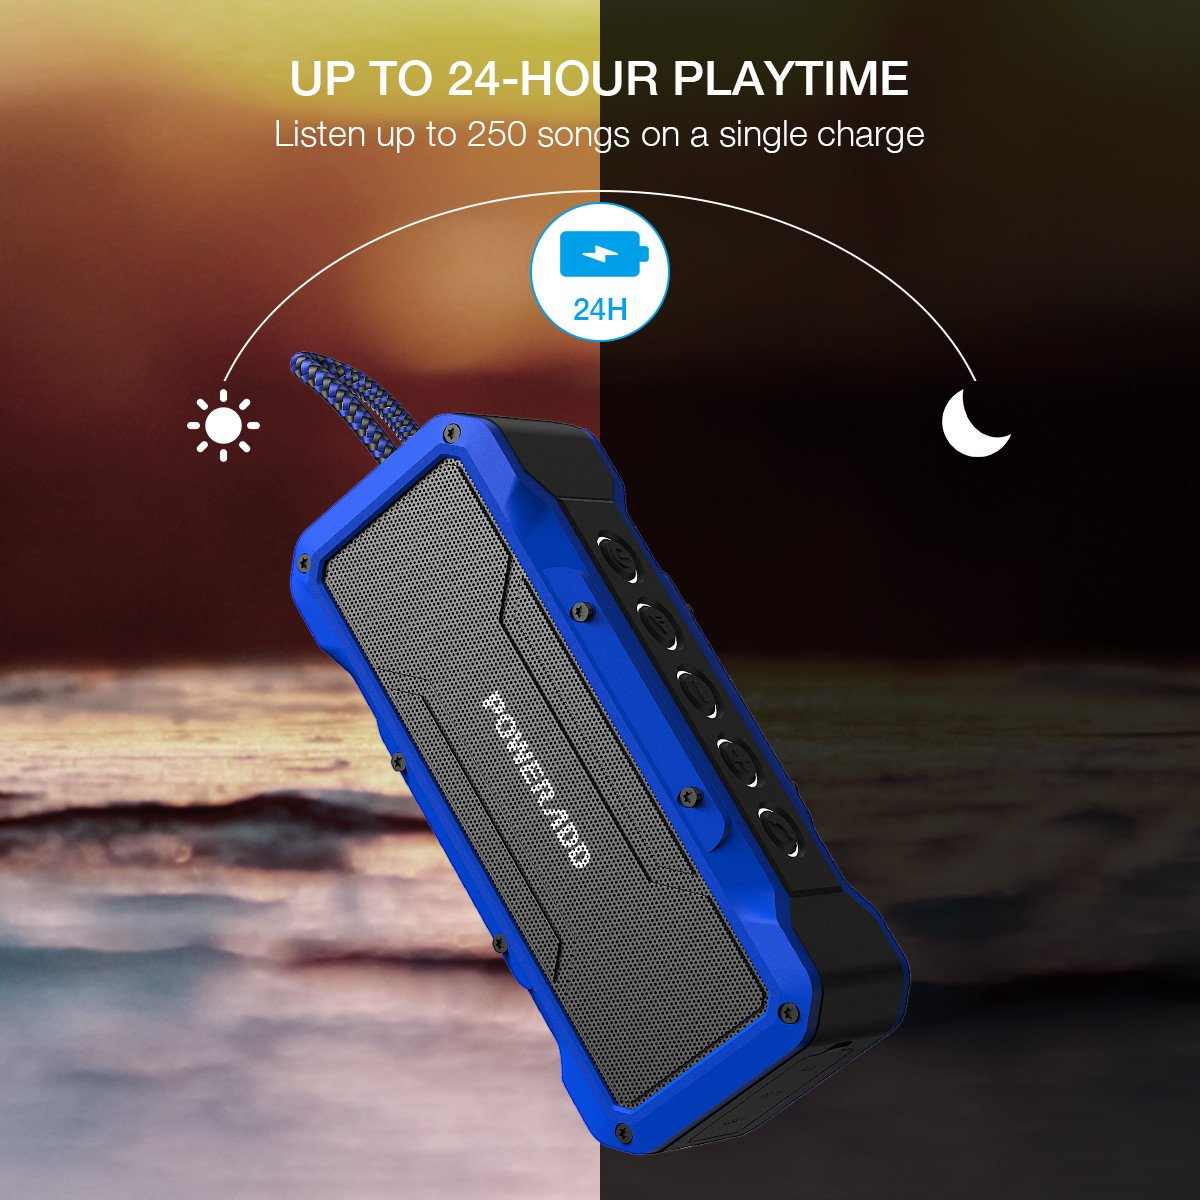 Poweradd MusicFly Outdoor Portable Bluetooth Speaker, 36W Speakers,Loud Volume,Dynamic Stereo,HD Sound, IPX7 Waterproof, Sandproof, Shockproof,Built in Mic,USB Charging Port, Blue